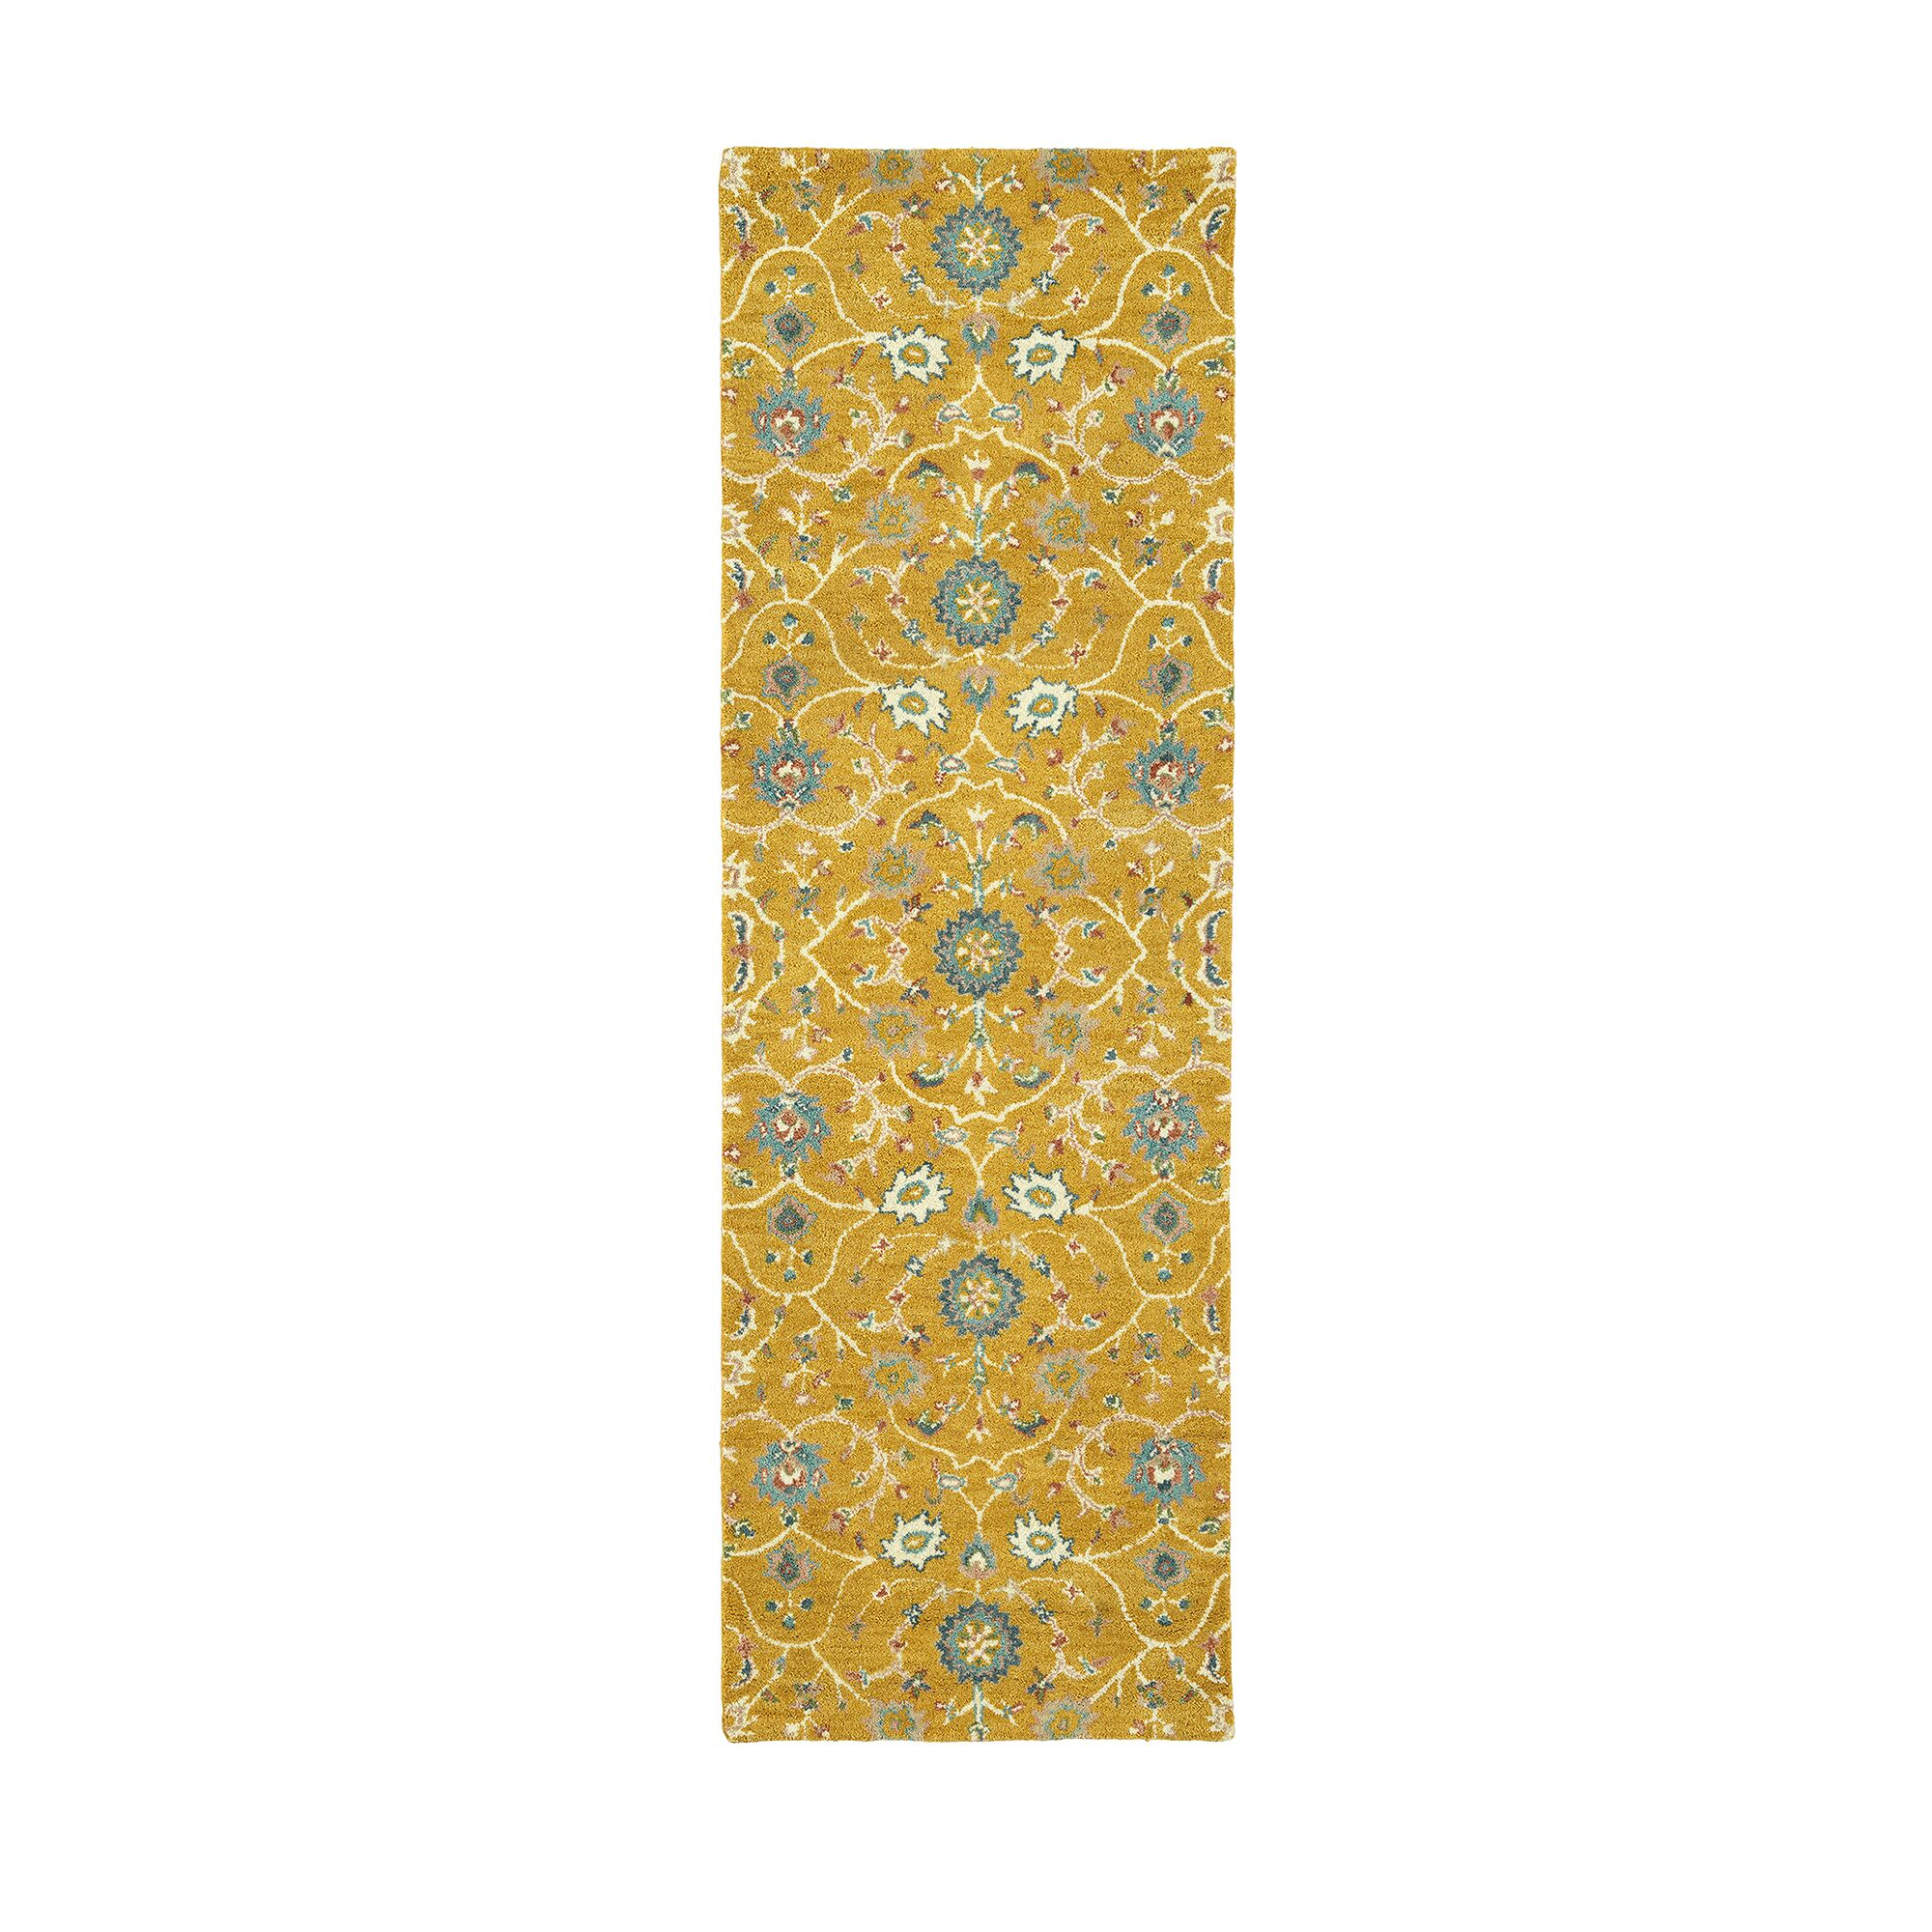 Romarin Hand-Tufted Wool Gold Area Rug Rug Size: Runner 2'6